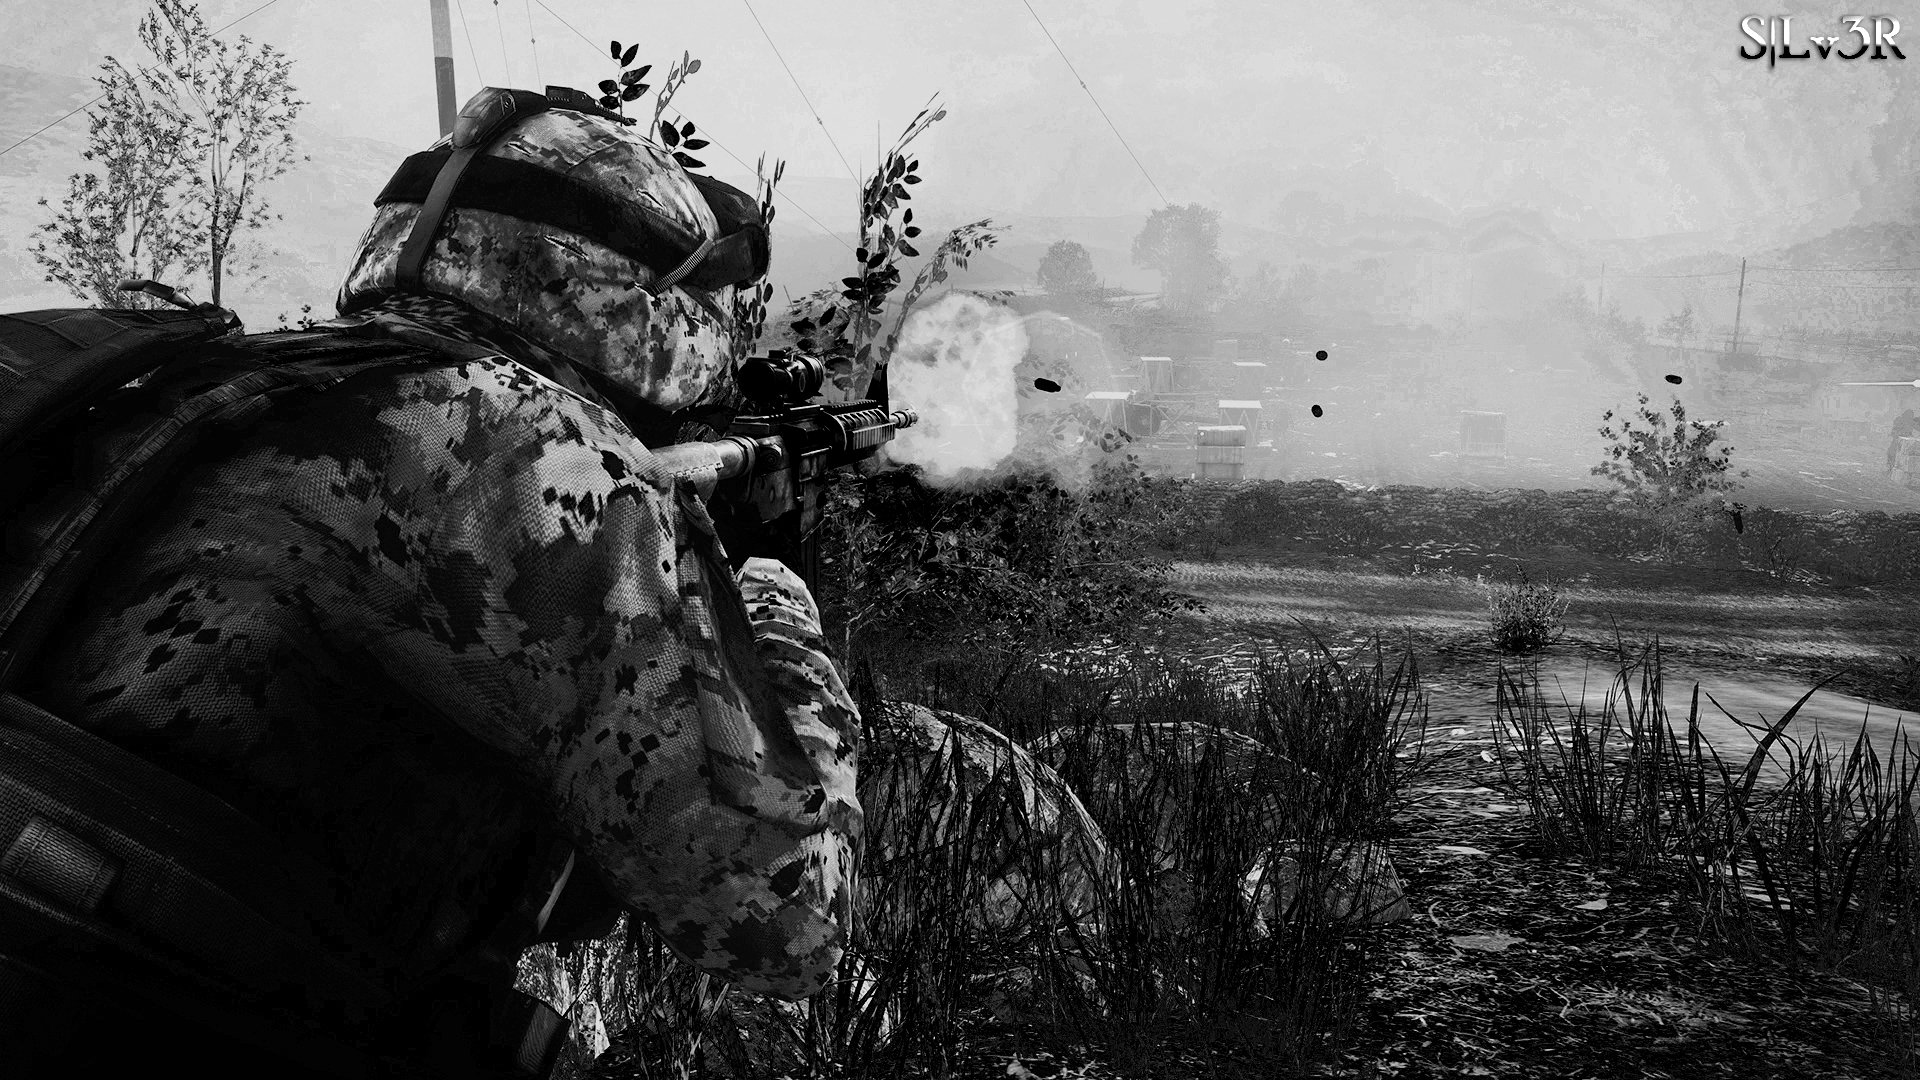 Cool Battlefield 4 Fire Armor In Black Background: ForestFire Black & White Full HD Wallpaper And Background